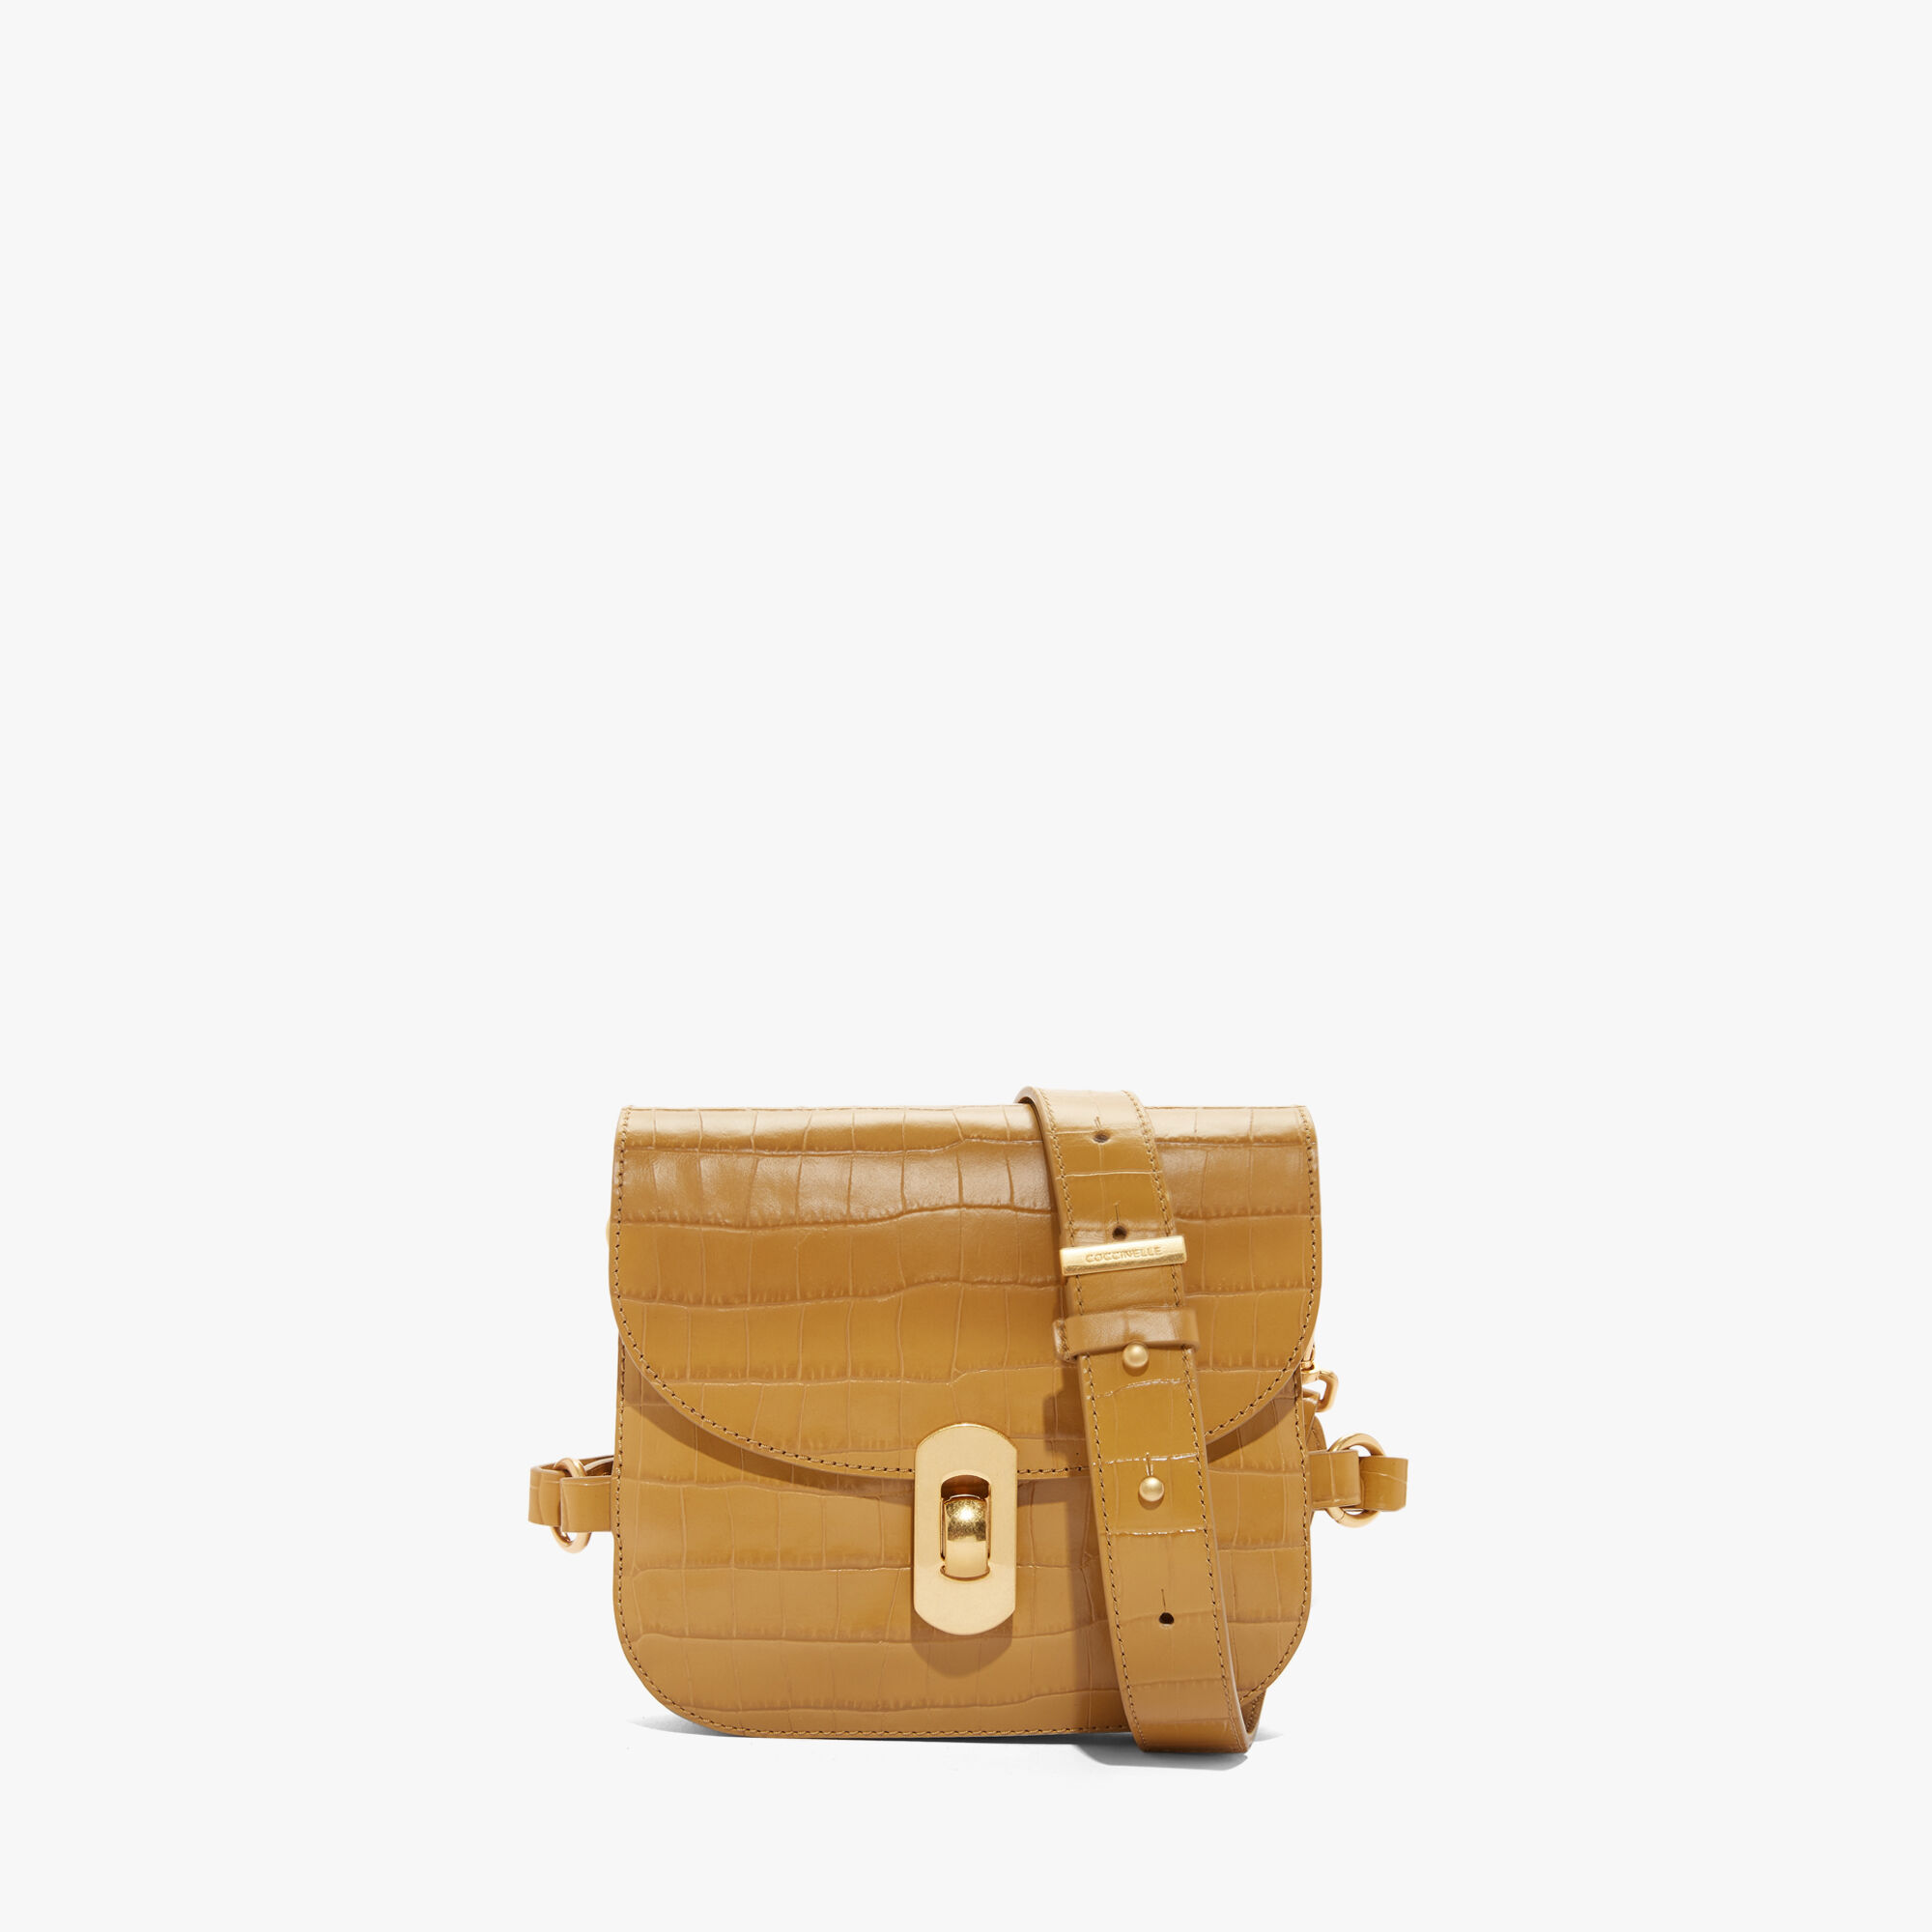 Coccinelle Online Store Womens Bags And Accessories